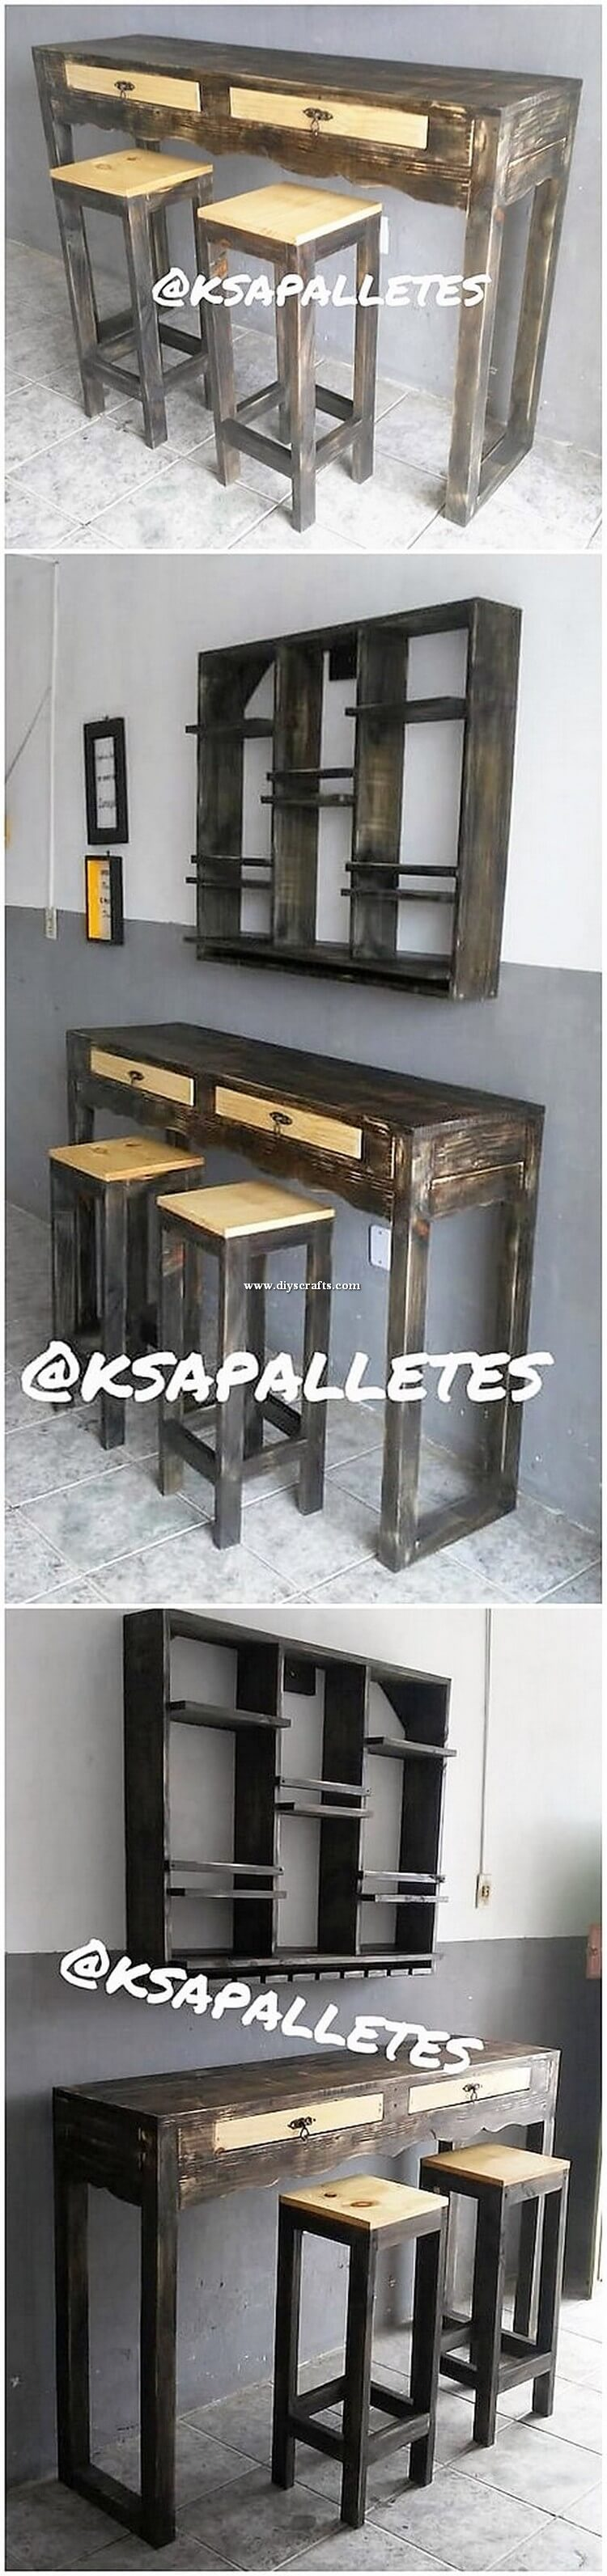 Pallet Table with Drawers and Stools